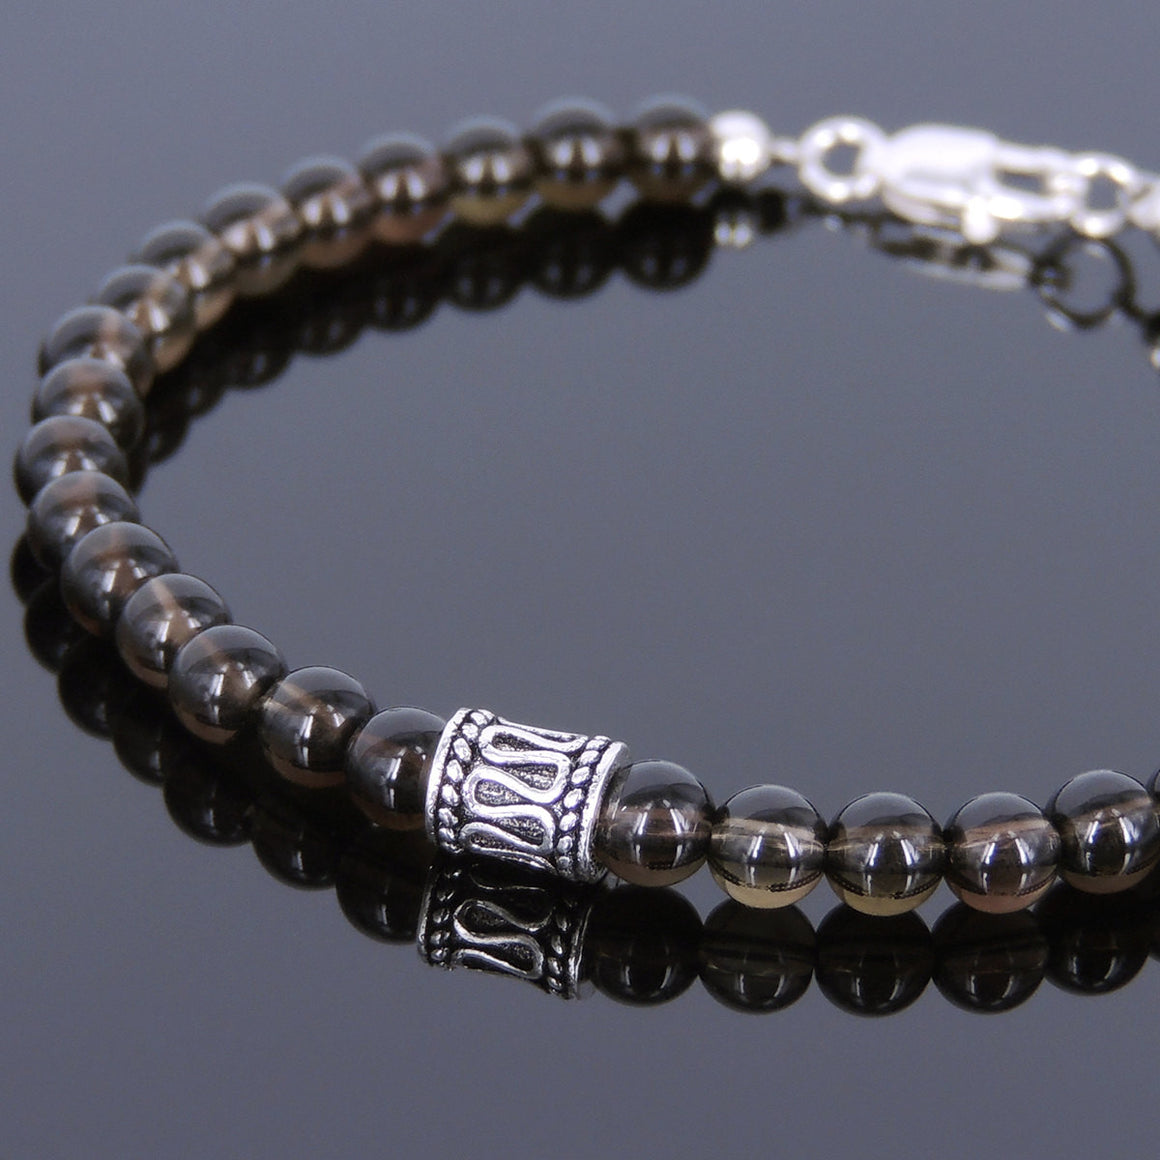 4.5mm Smoky Quartz Healing Gemstone Bracelet with S925 Sterling Silver Spacer Beads & Clasp - Handmade by Gem & Silver BR591